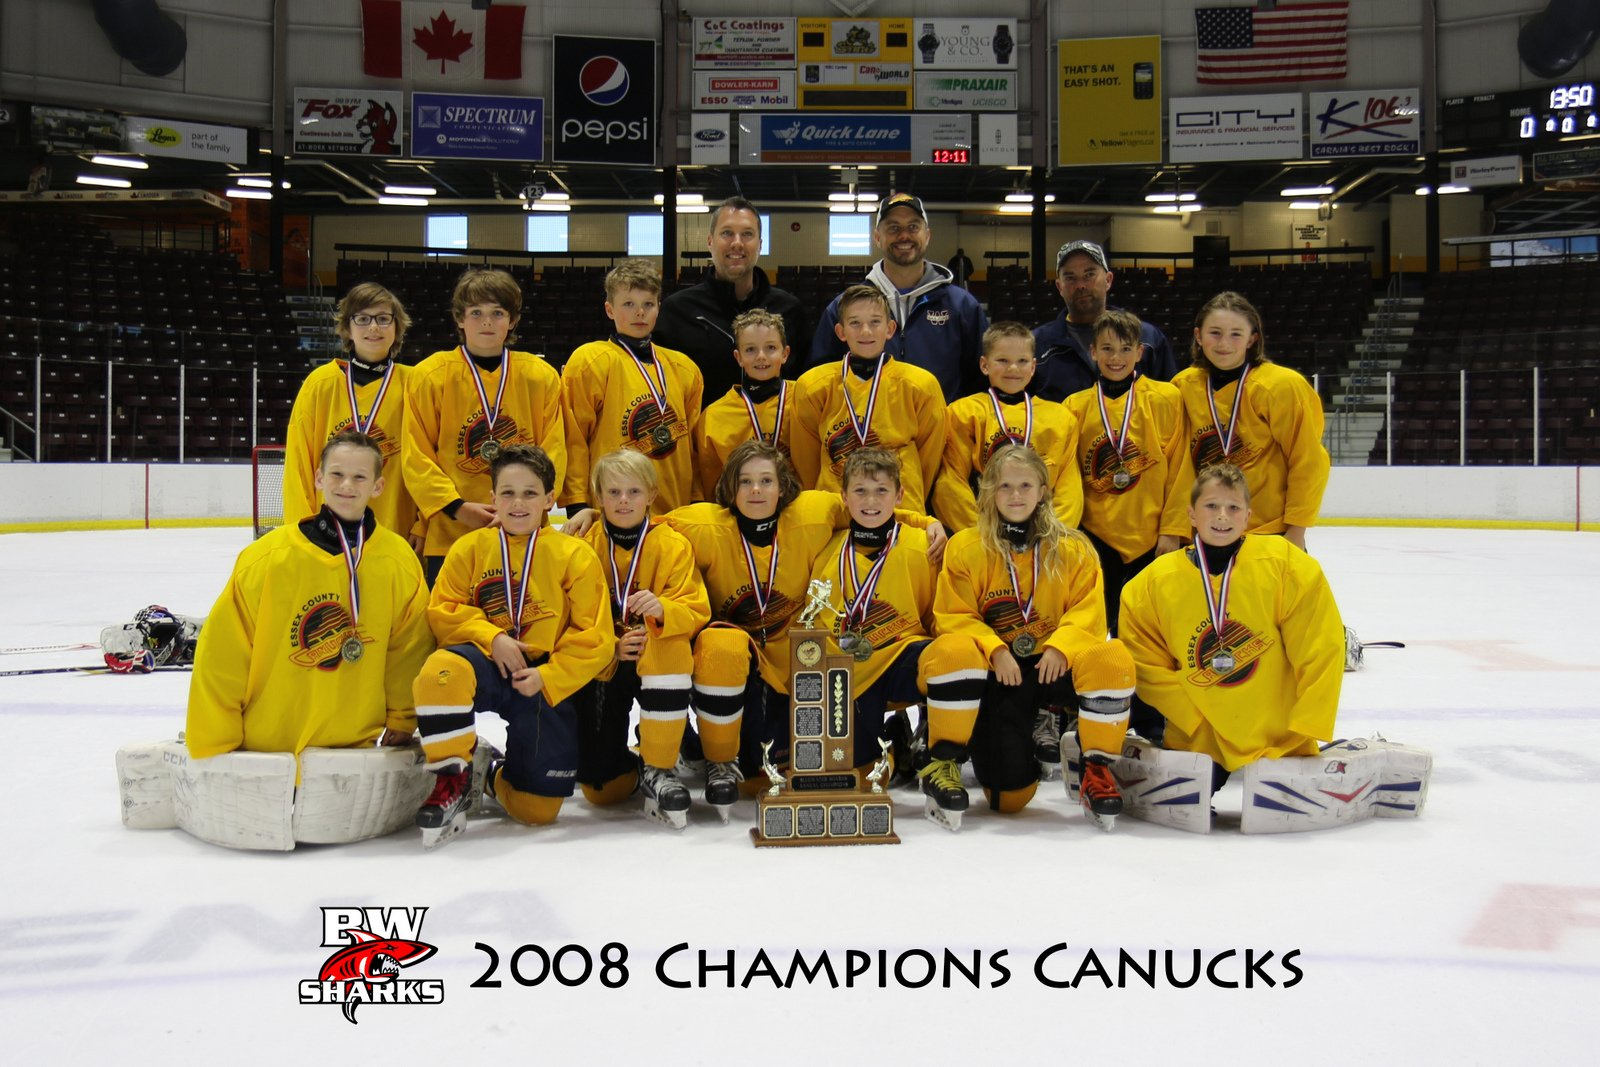 2008-Champions-Canucks-SilverPeak-Studios-Canada-Sarnia-Bluewater-Sharks-Tournament-001